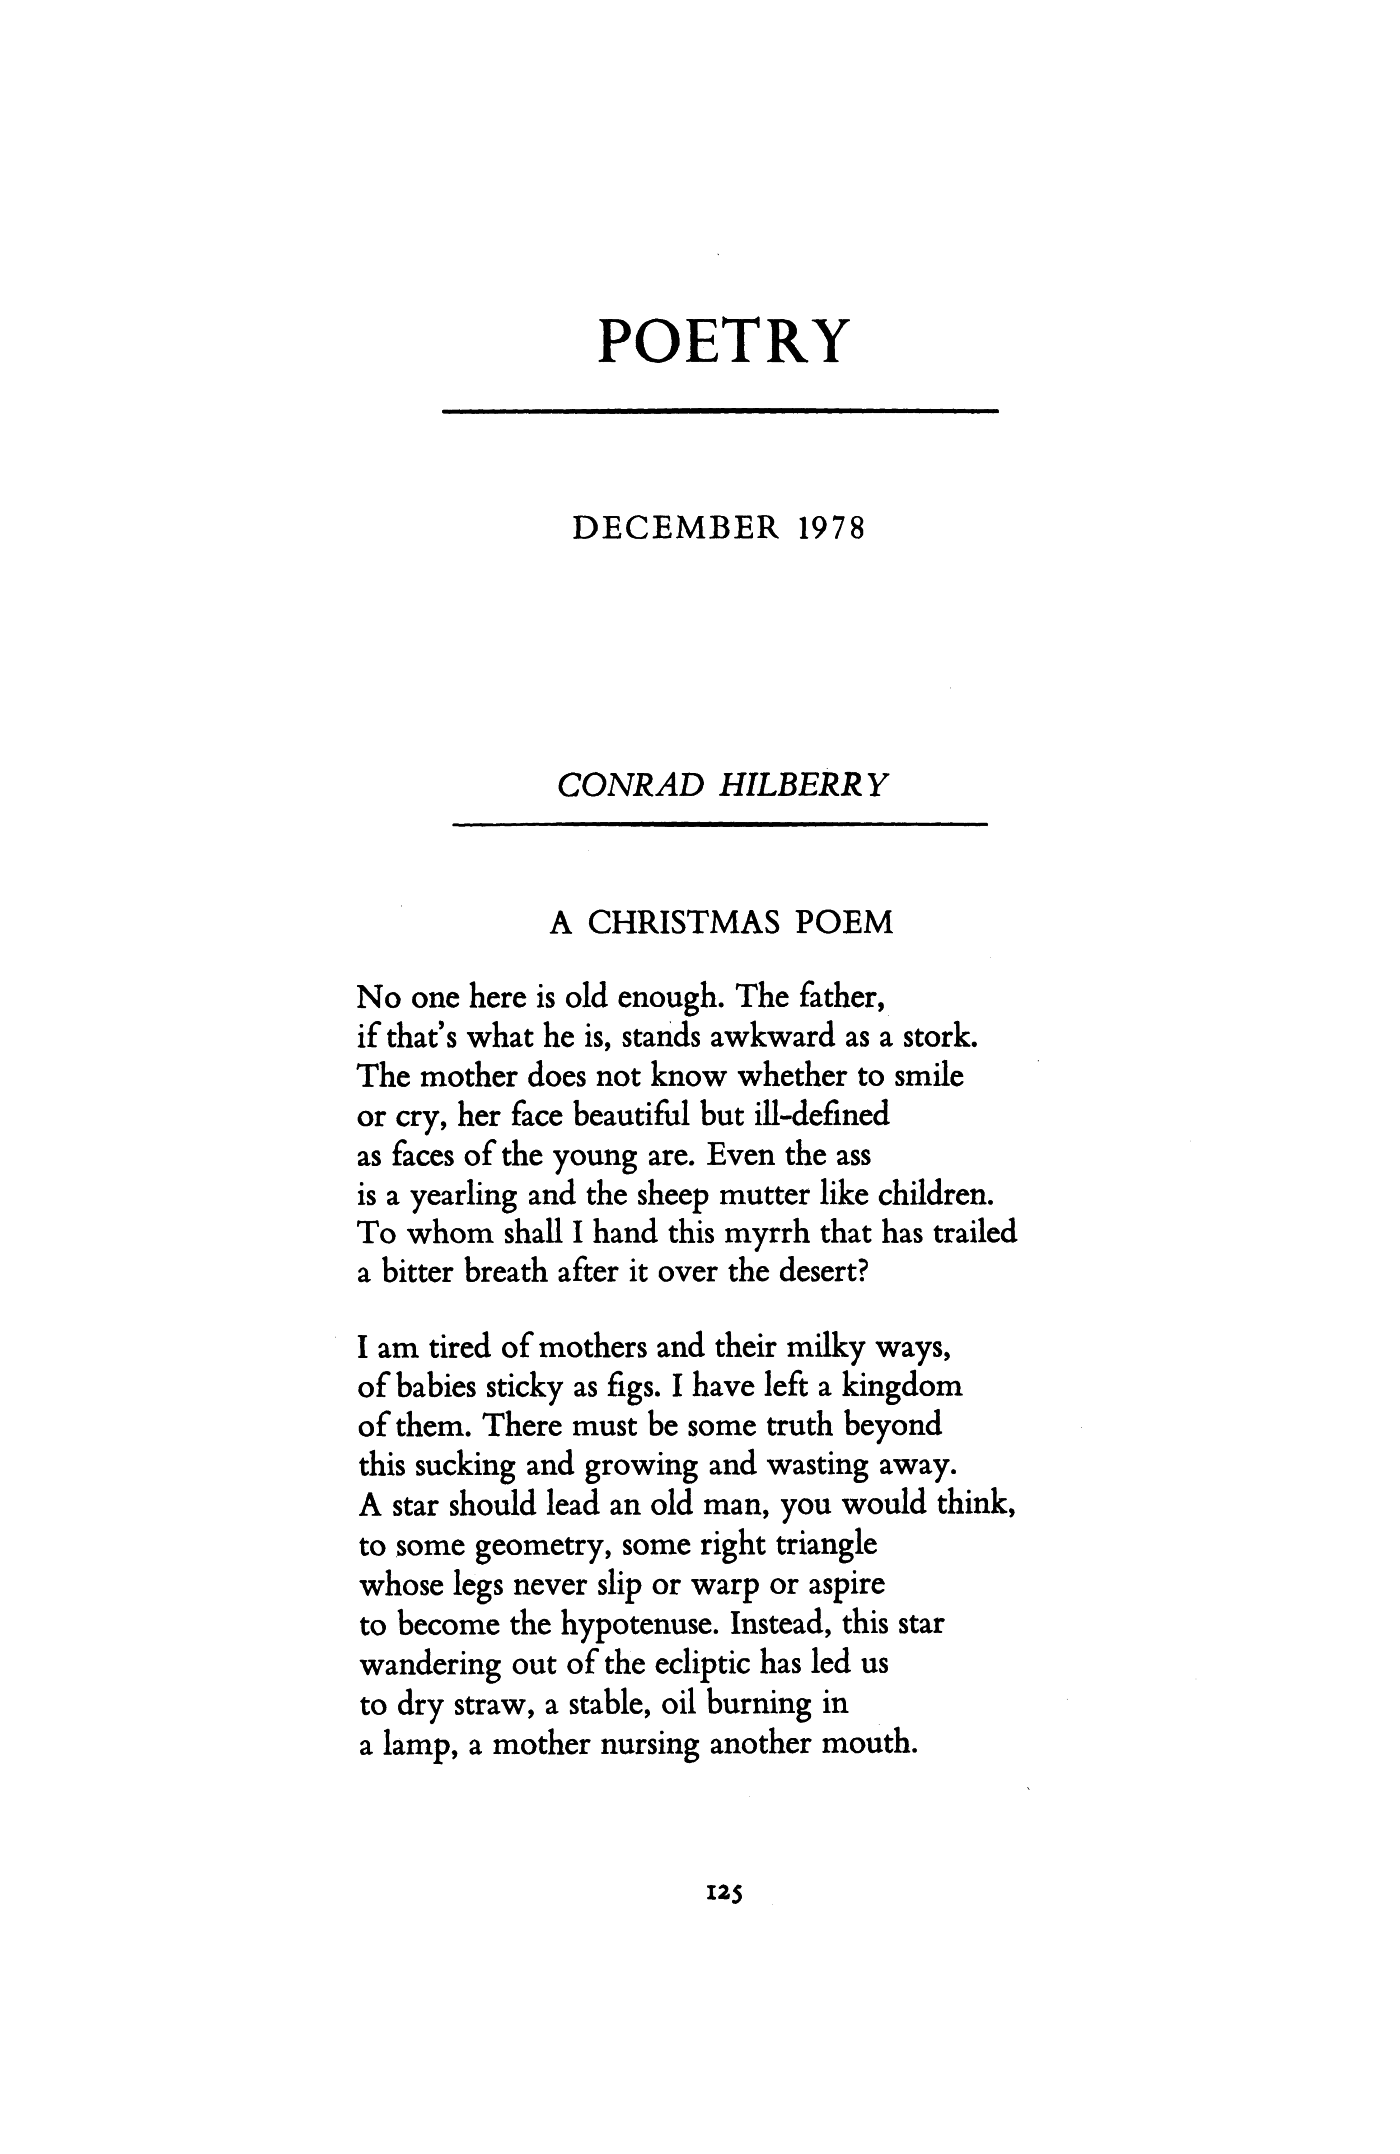 Christmas Poem.A Christmas Poem By Conrad Hilberry Poetry Magazine